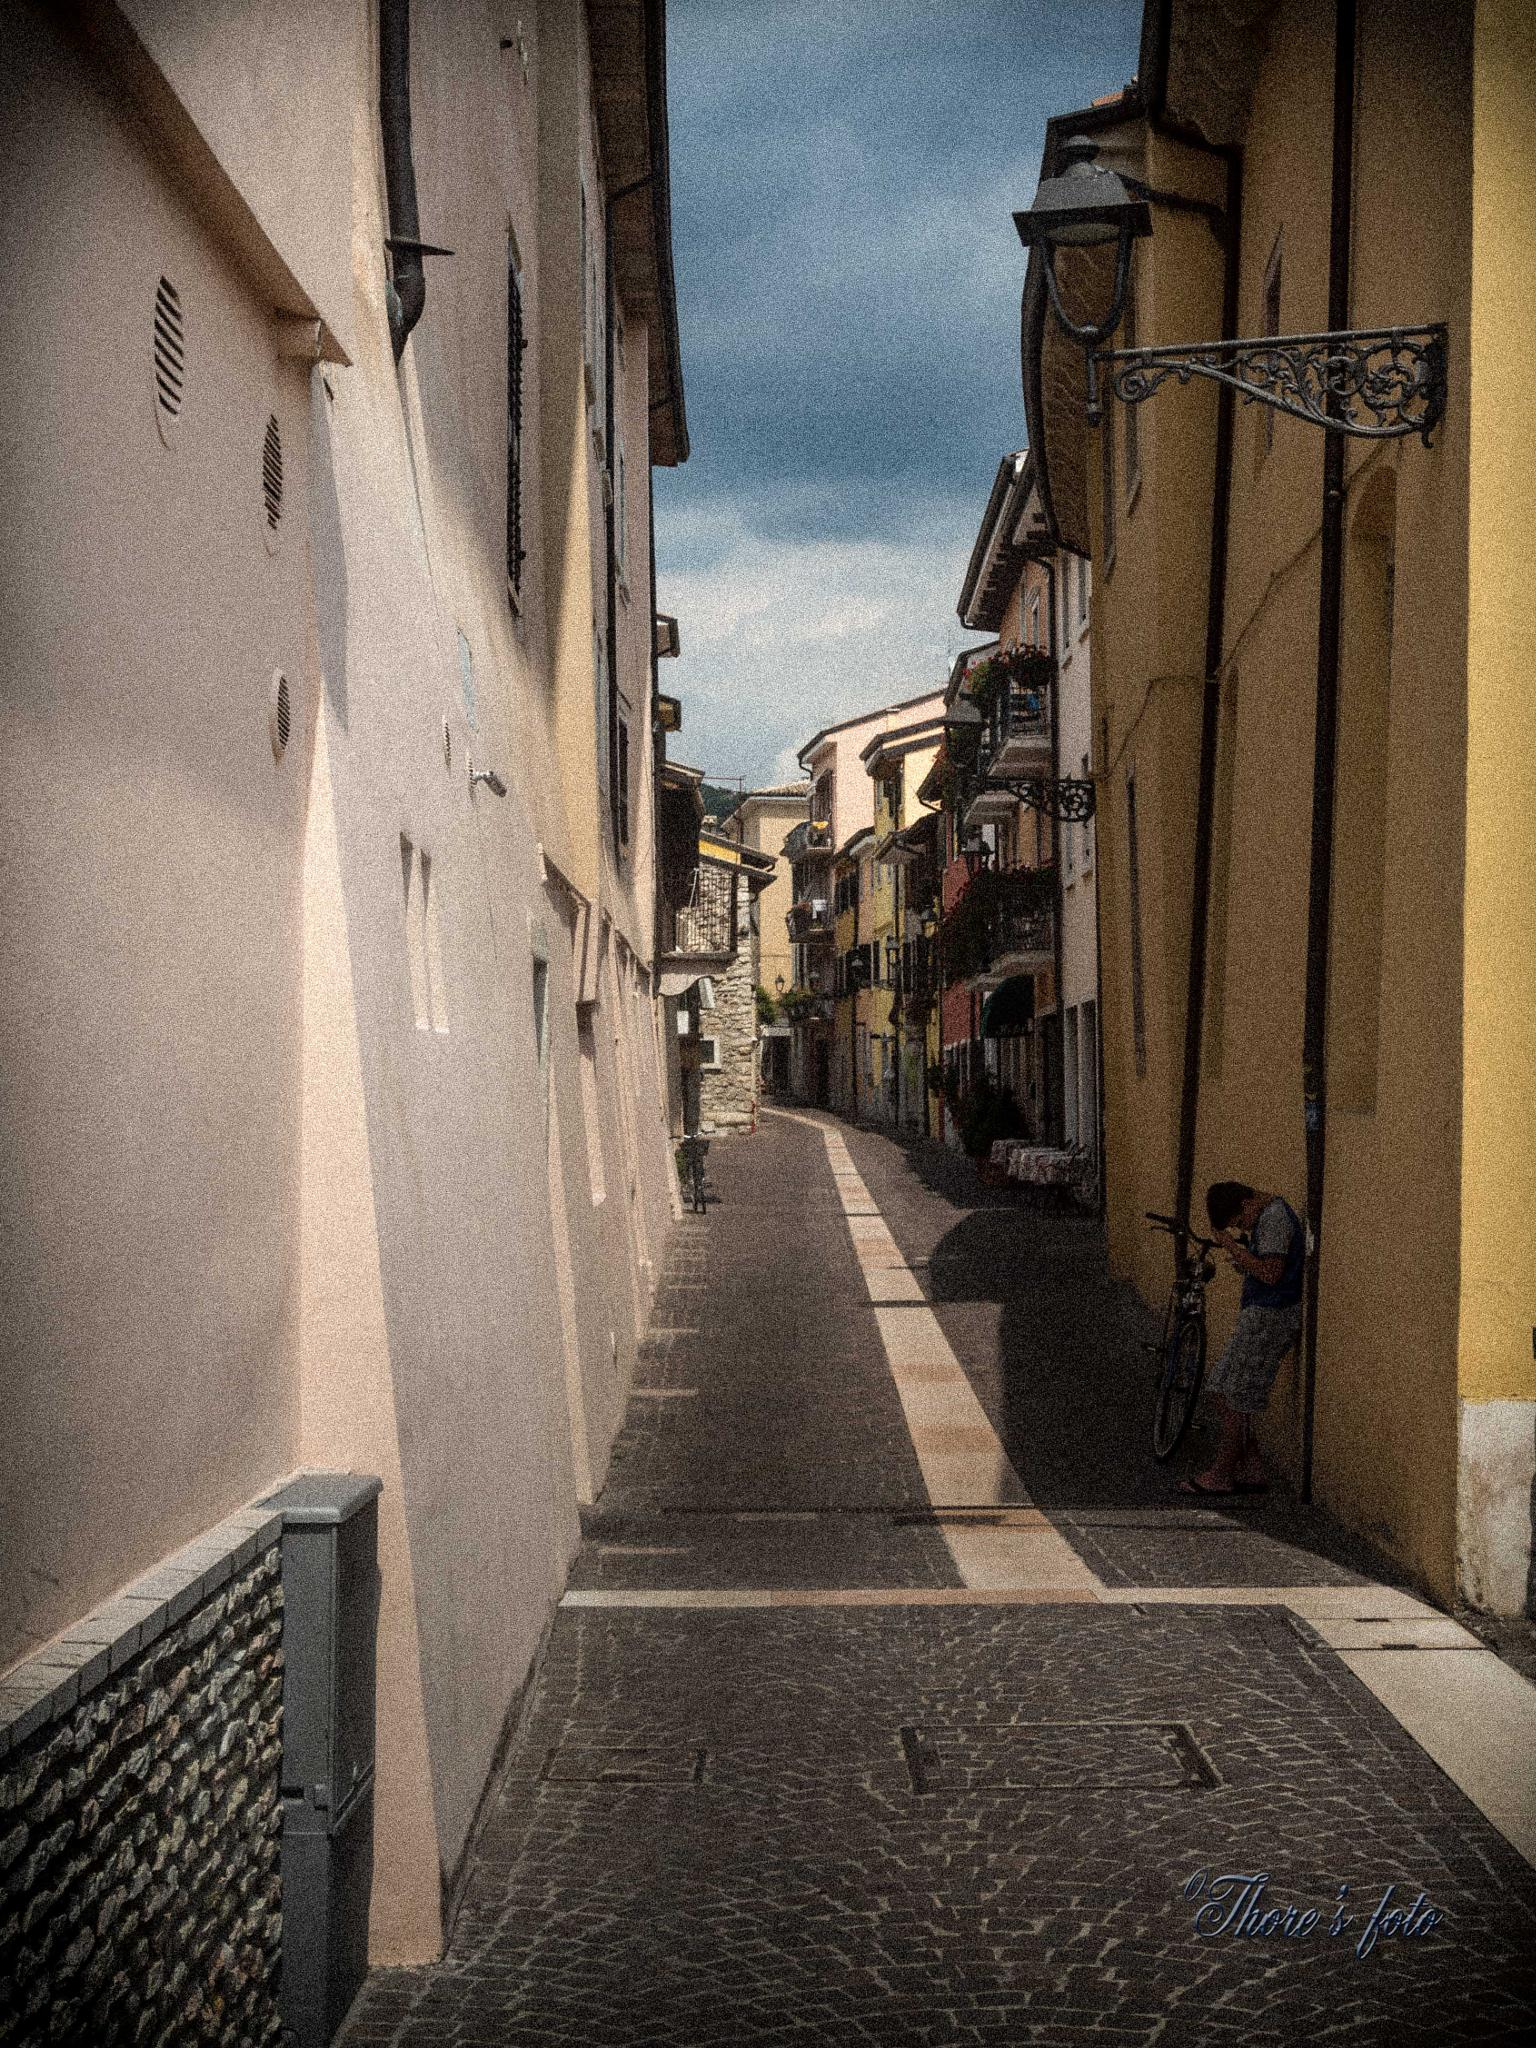 The empty street and a sad boy by Thore's photo